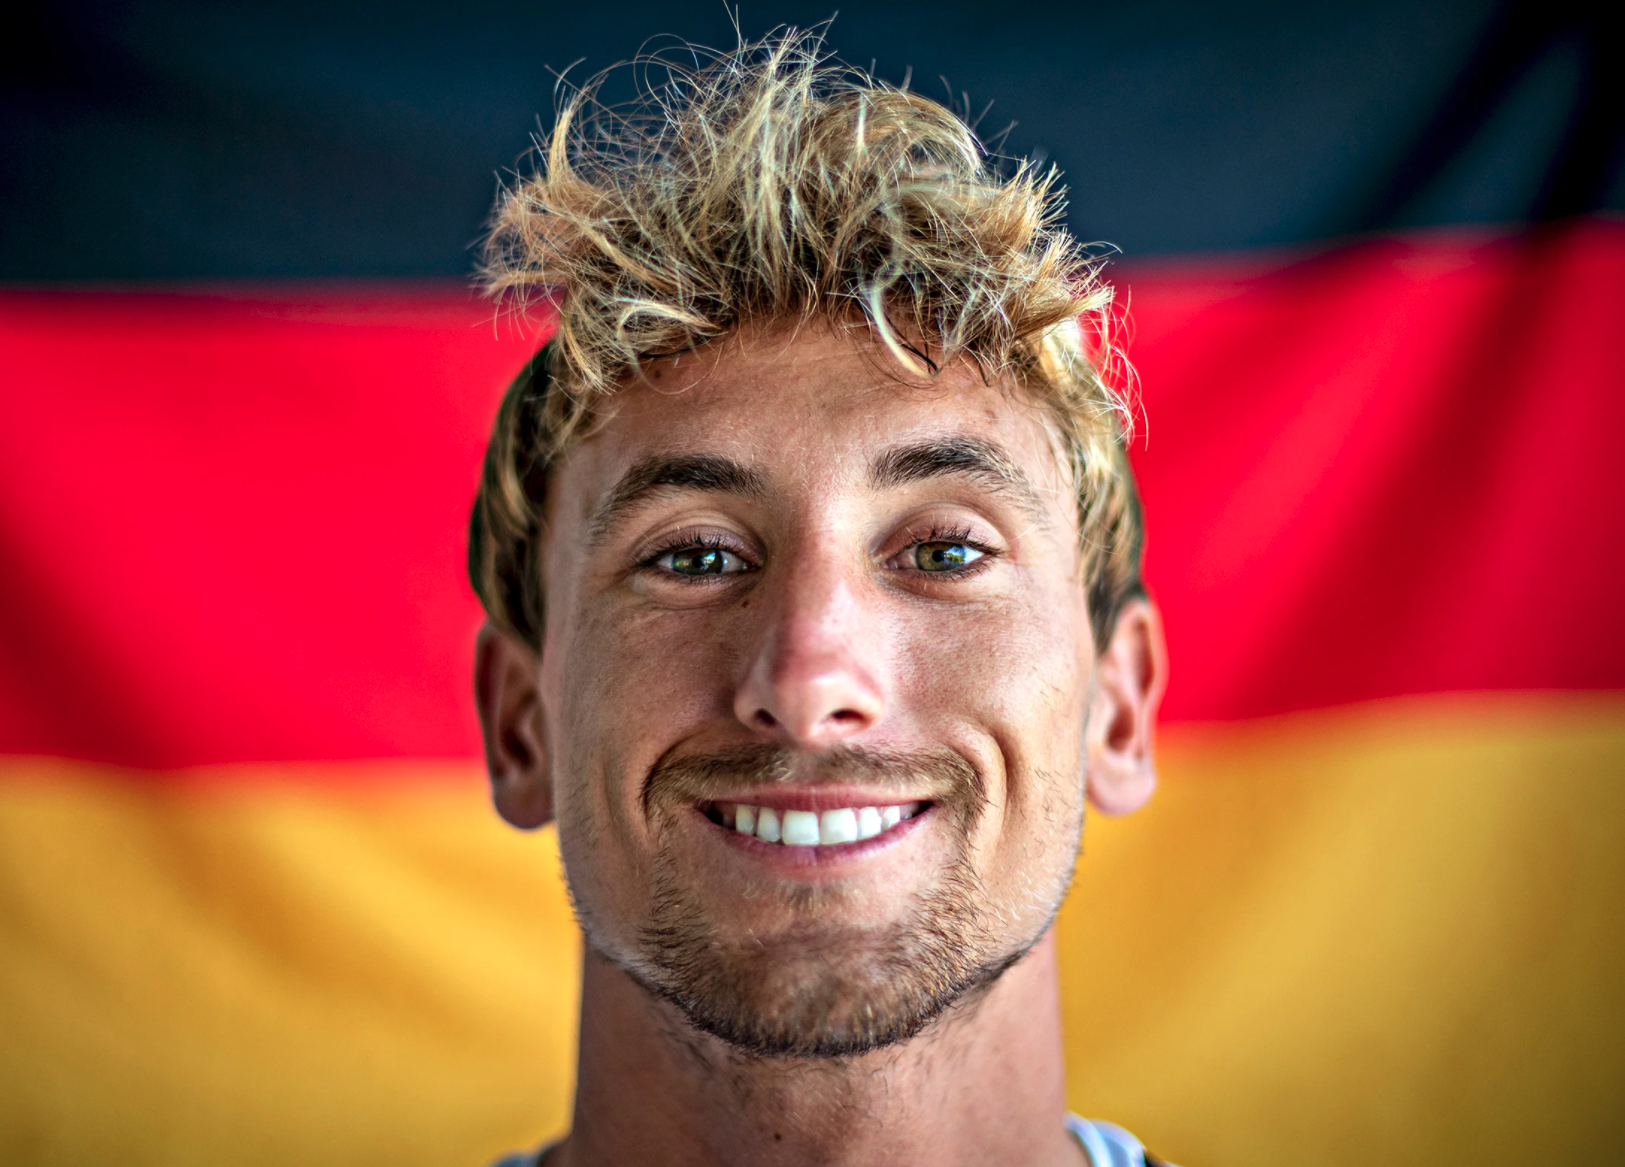 The new face of German surfing.